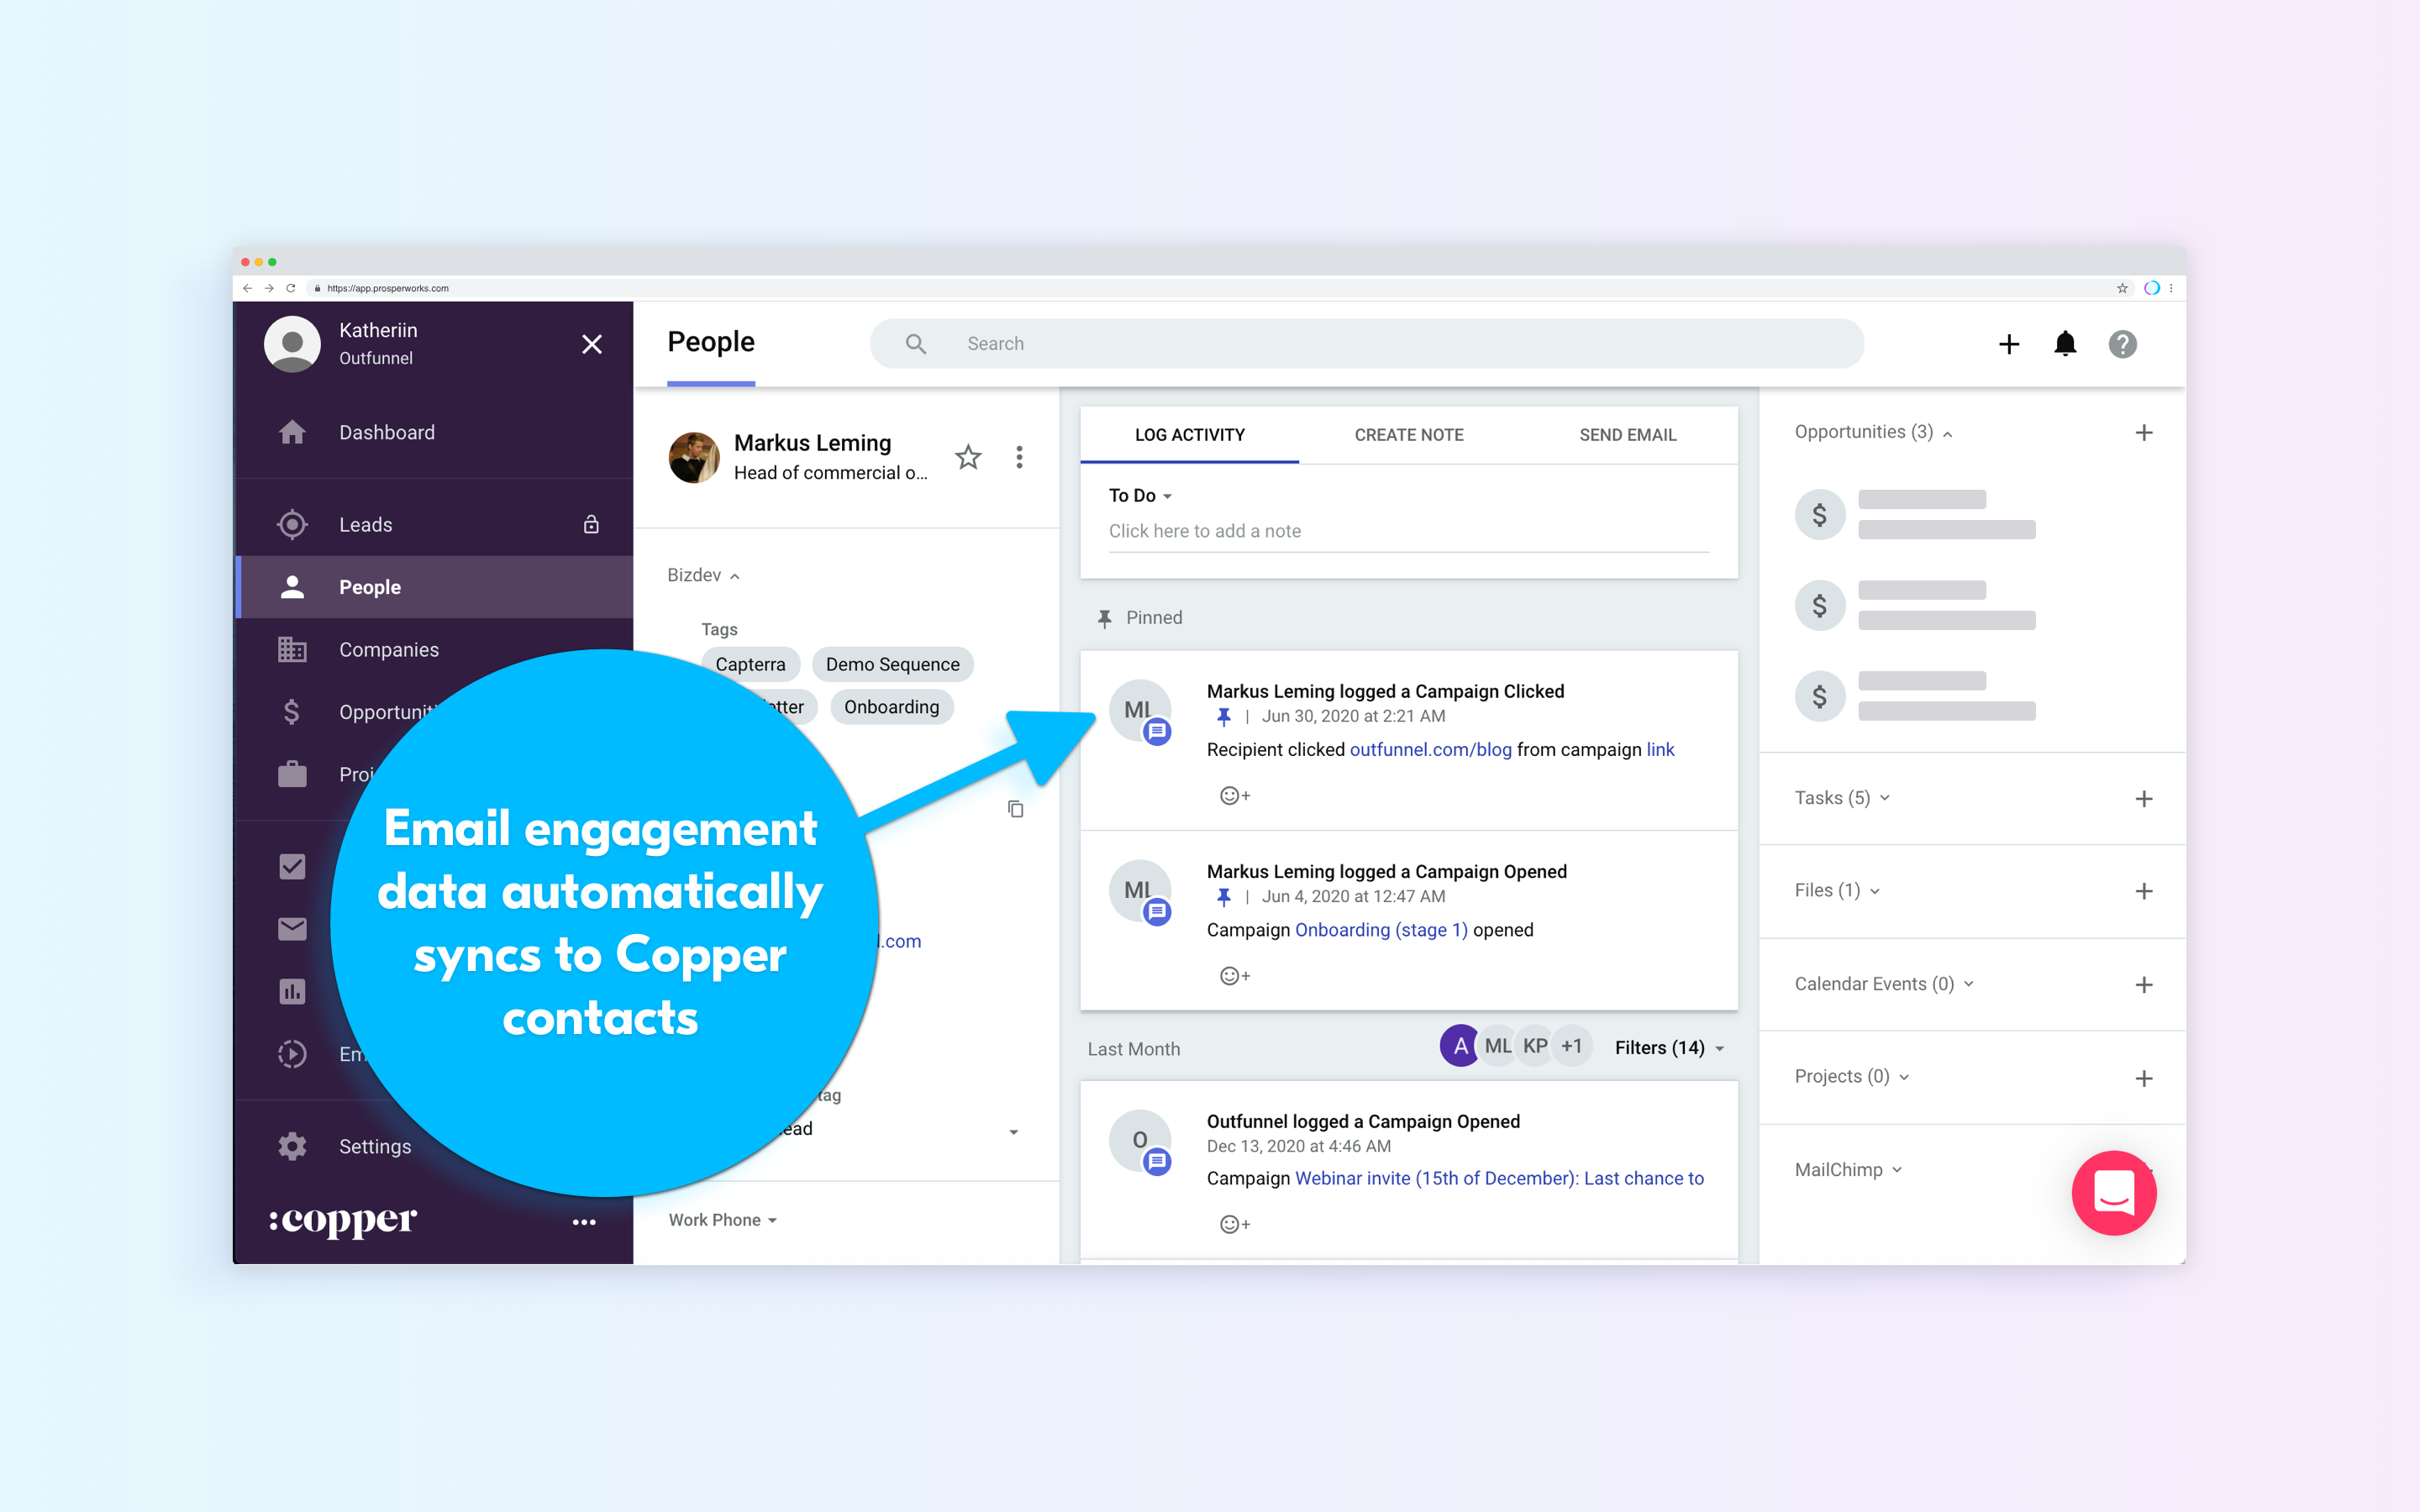 Mailchimp email engagement in Copper